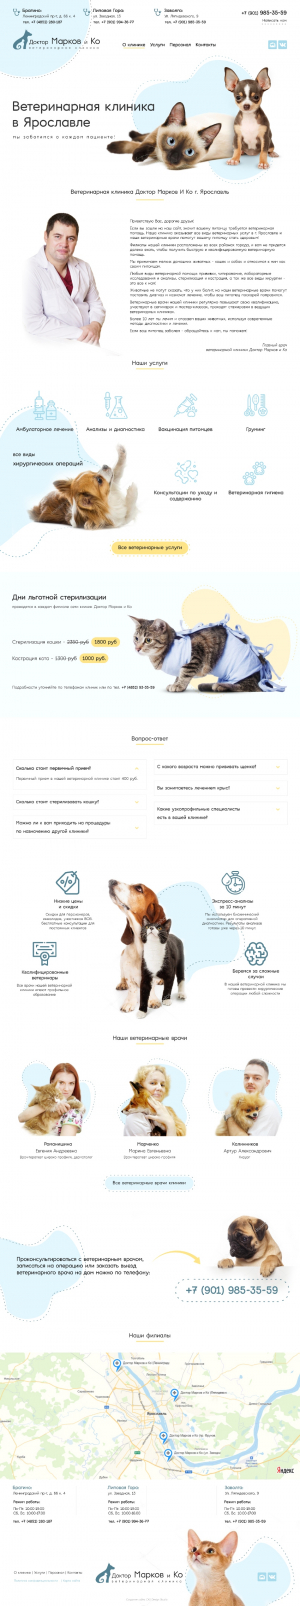 website for veterinary clinic